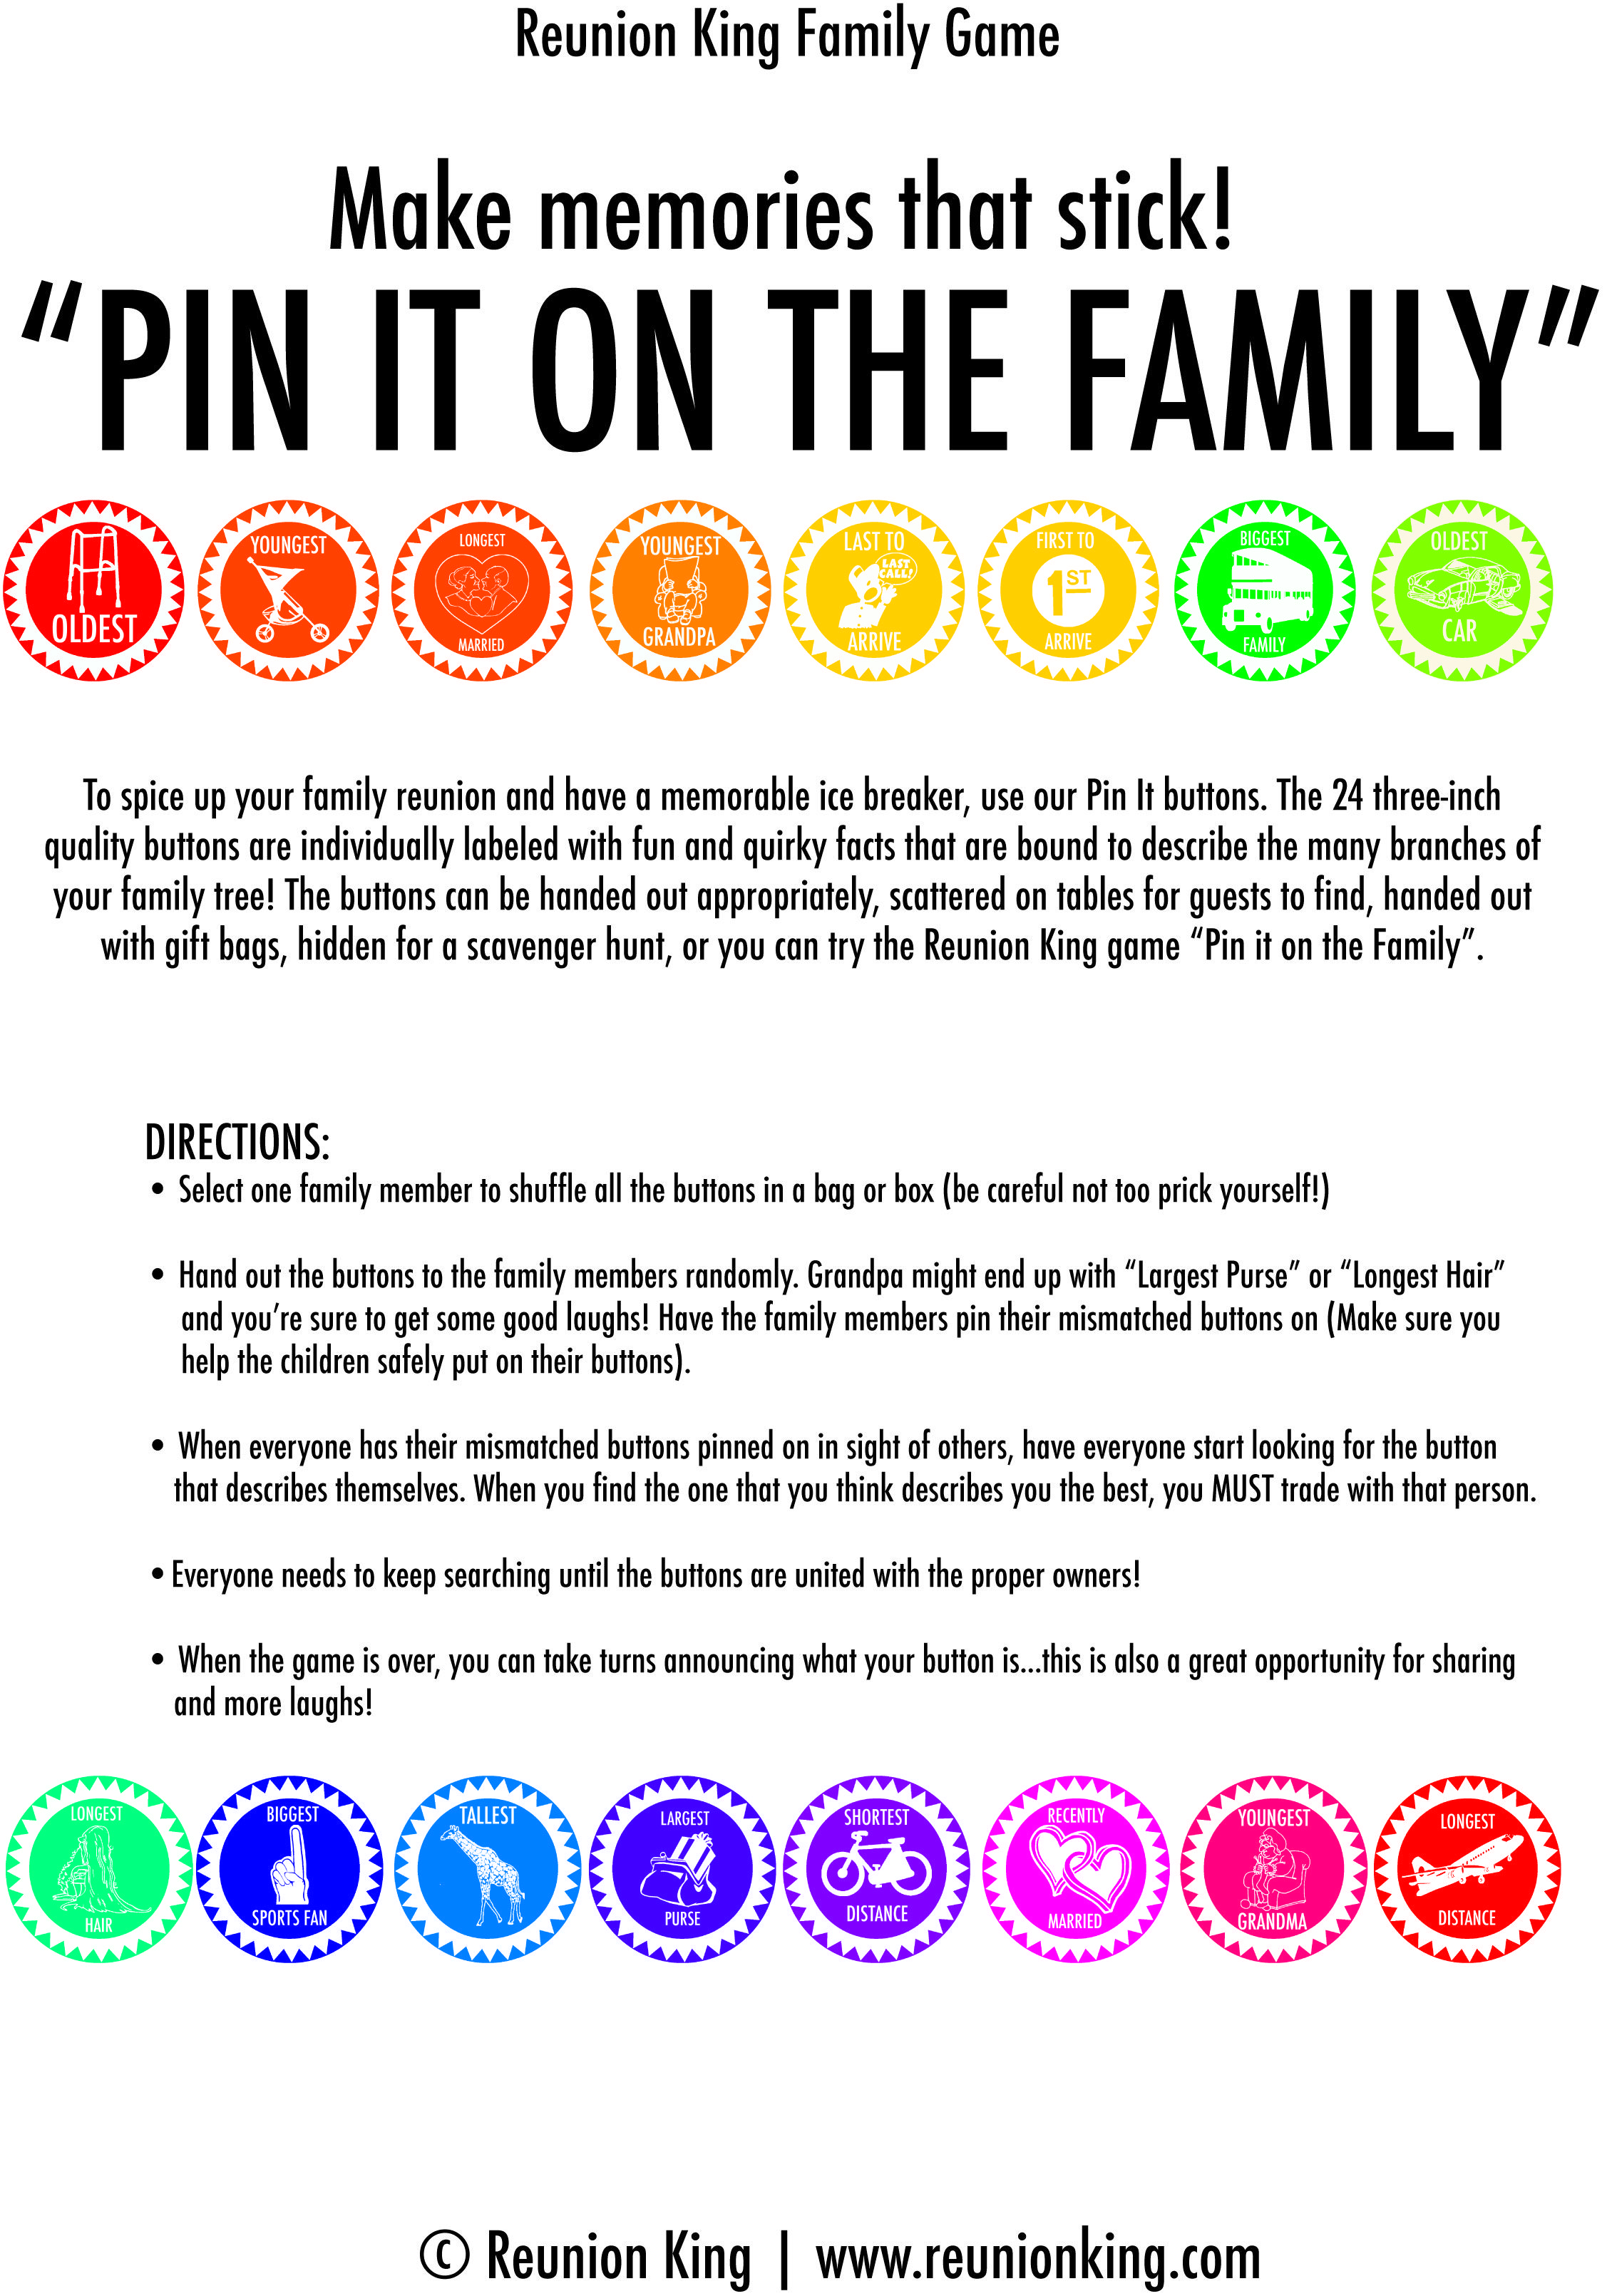 An Awesome Family Reunion Game To Help Mingle The Families Complete With Prompts And